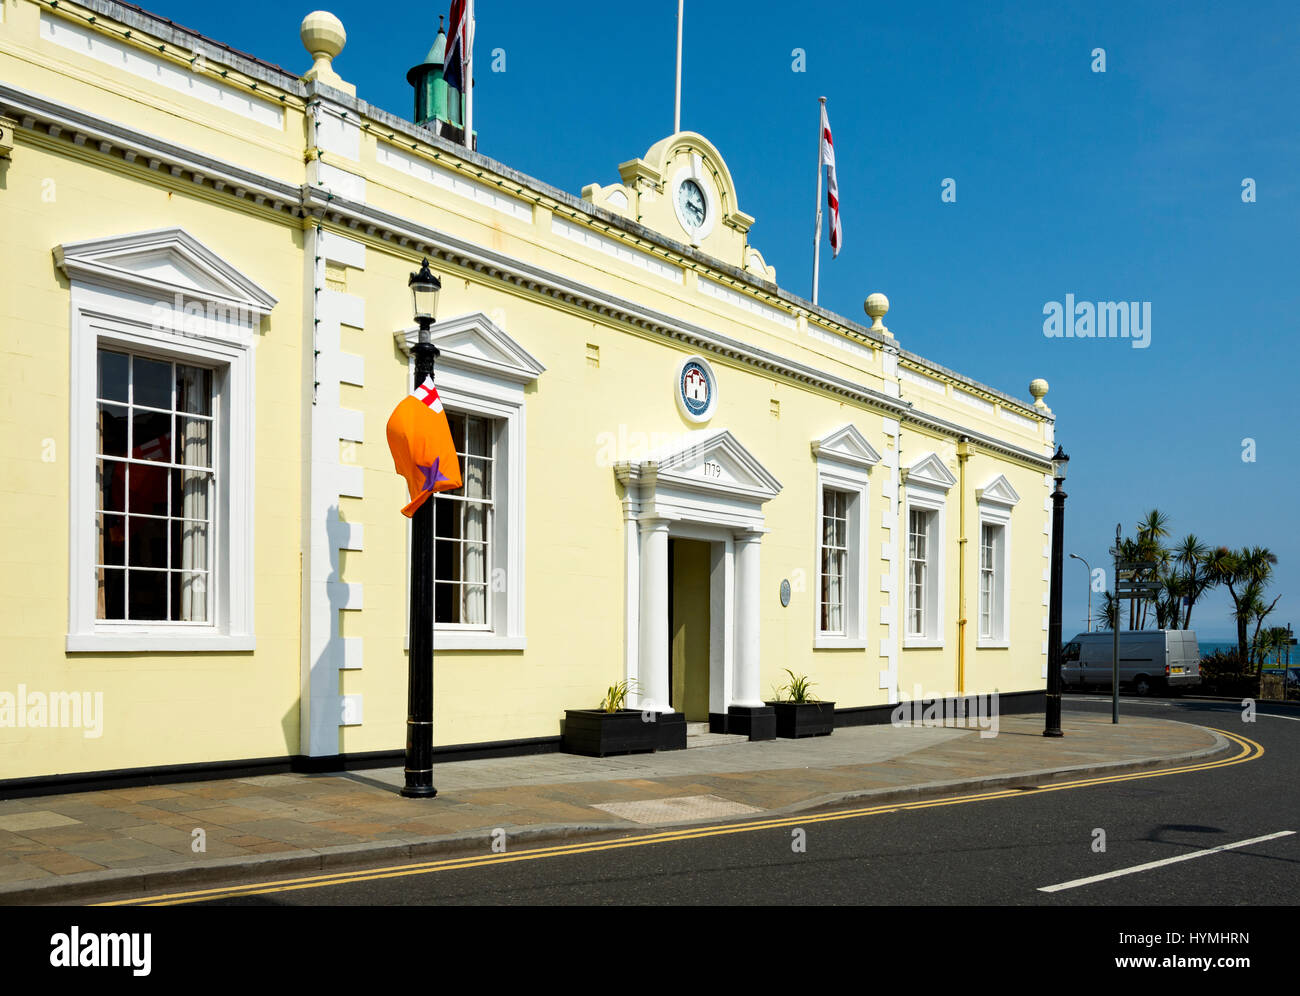 The Town Hall, built 1779, originally the courthouse and gaol, Carrickfergus, County Antrim, Northern Ireland, UK Stock Photo